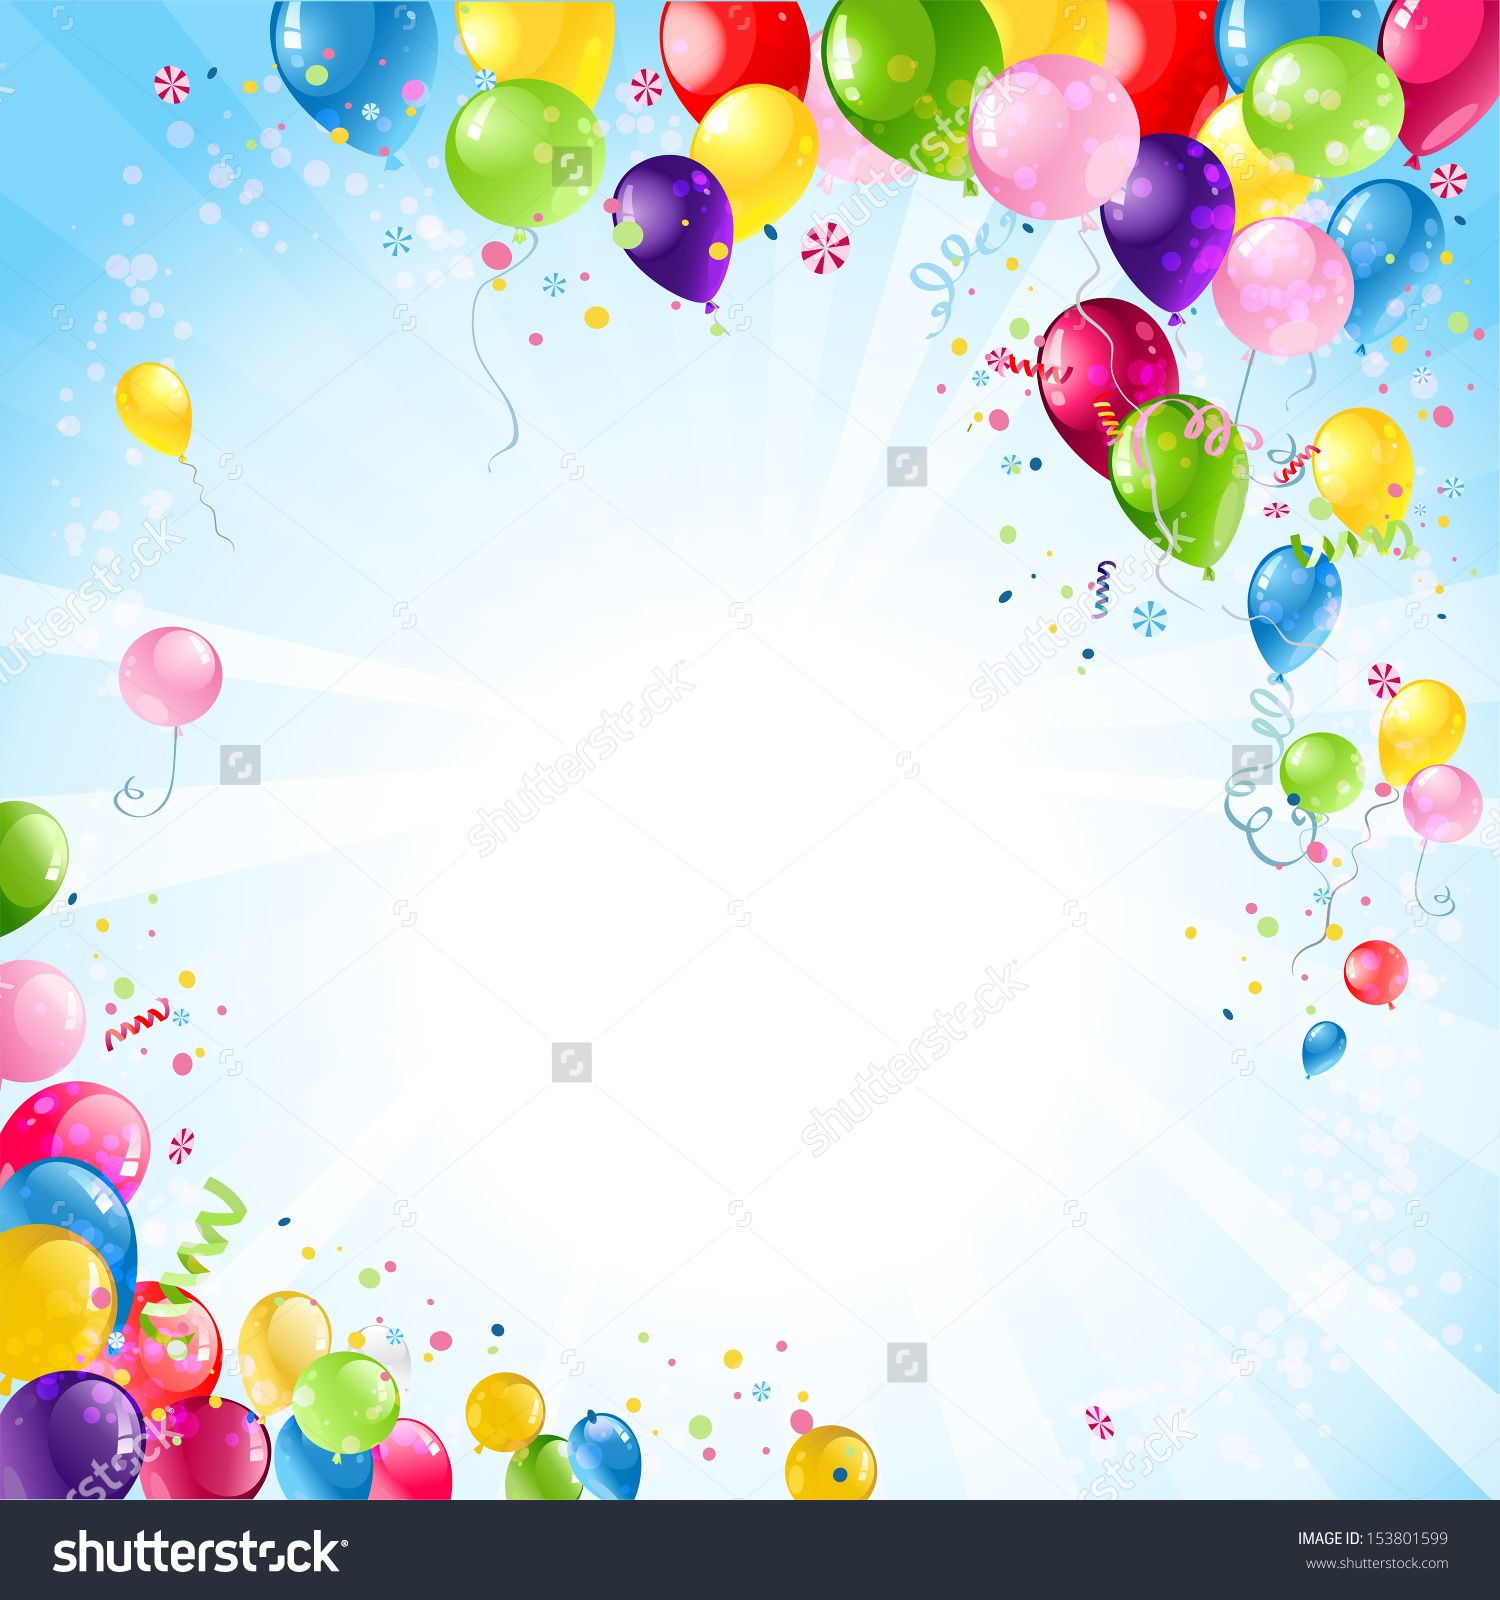 Free Birthday Background Vector Birthday background